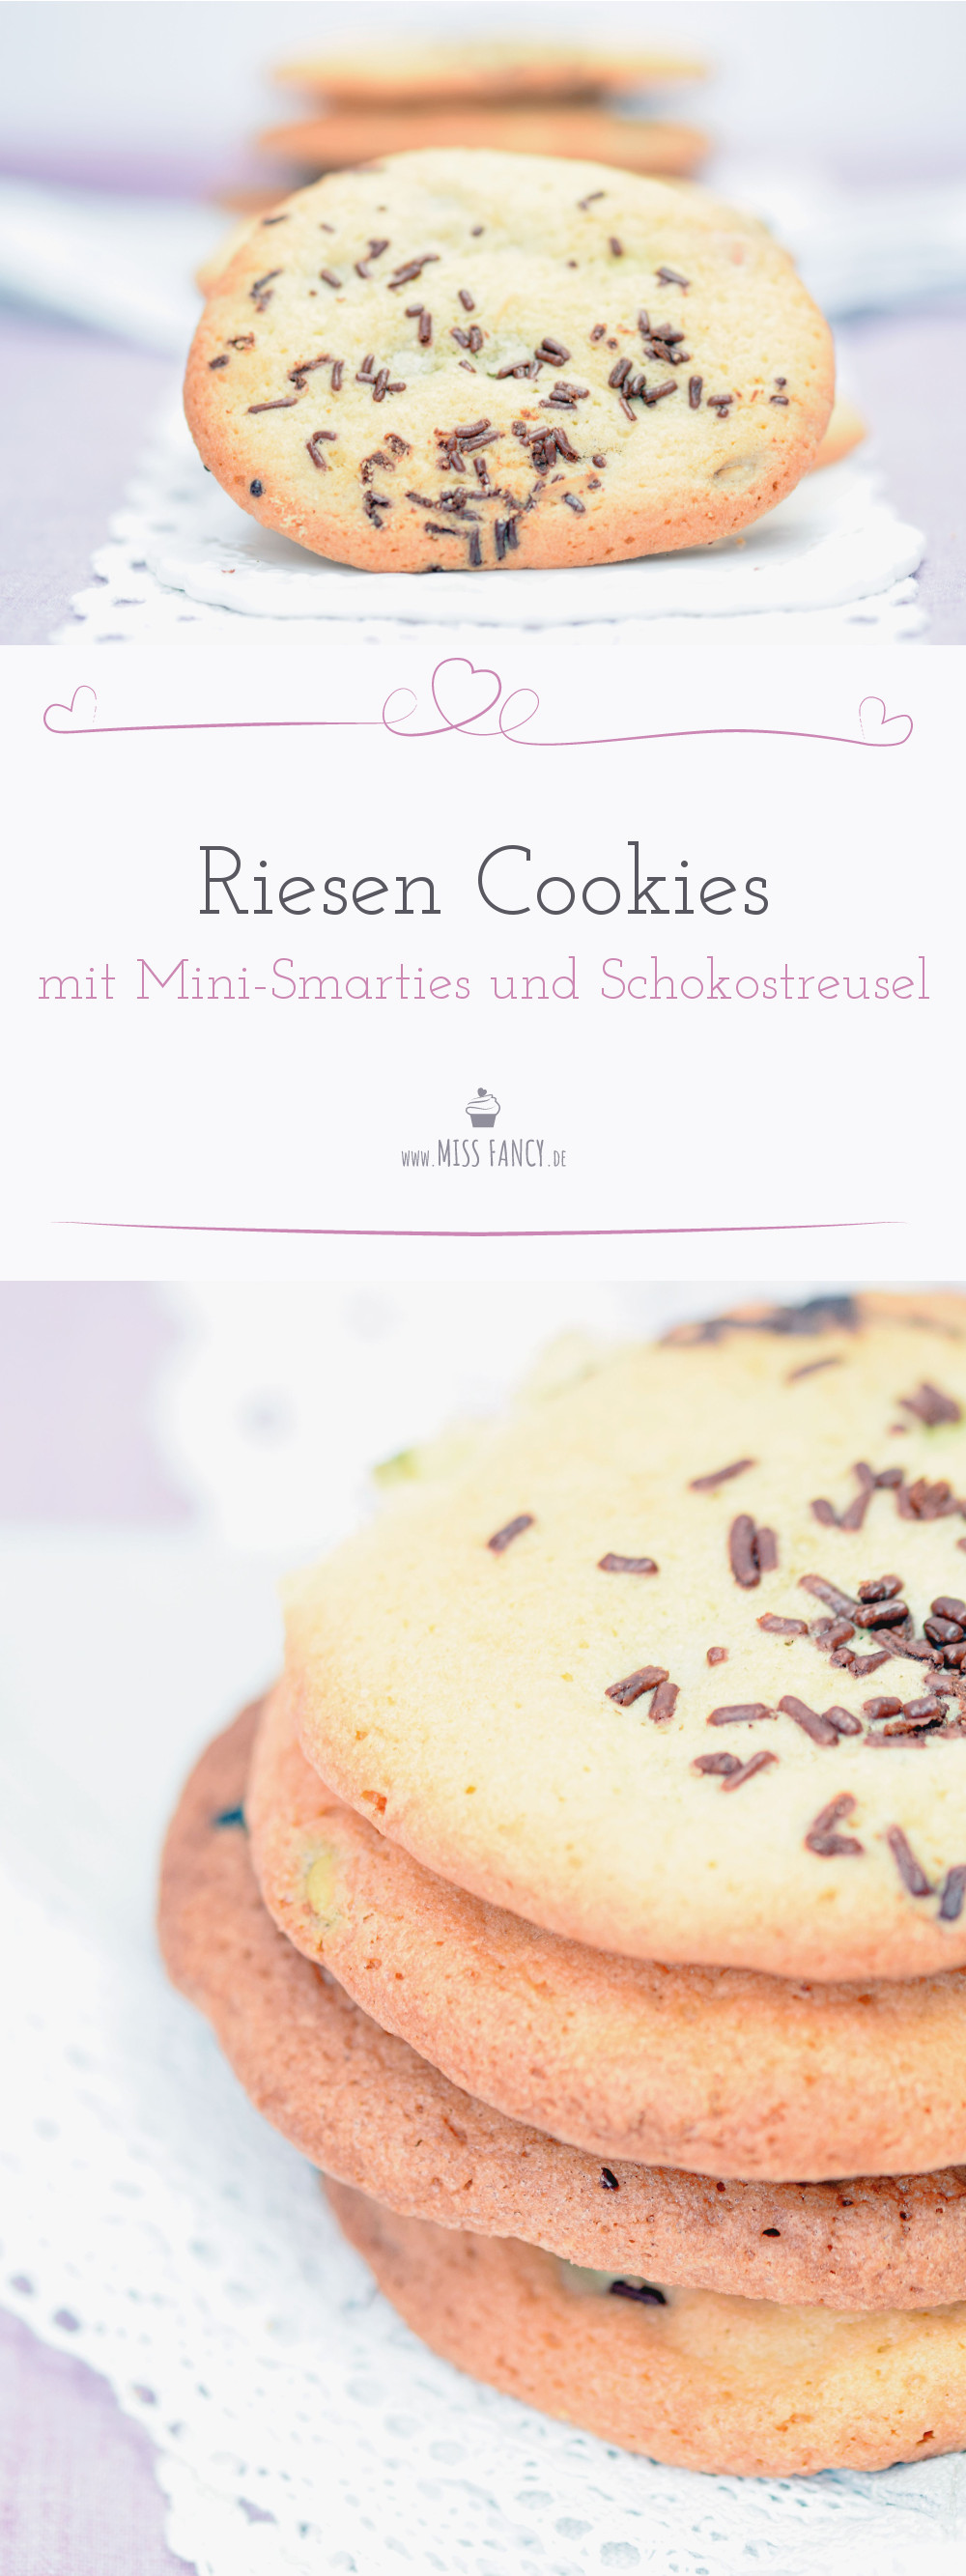 Rezept Cookies Mini Smarties Missfancy Foodblog